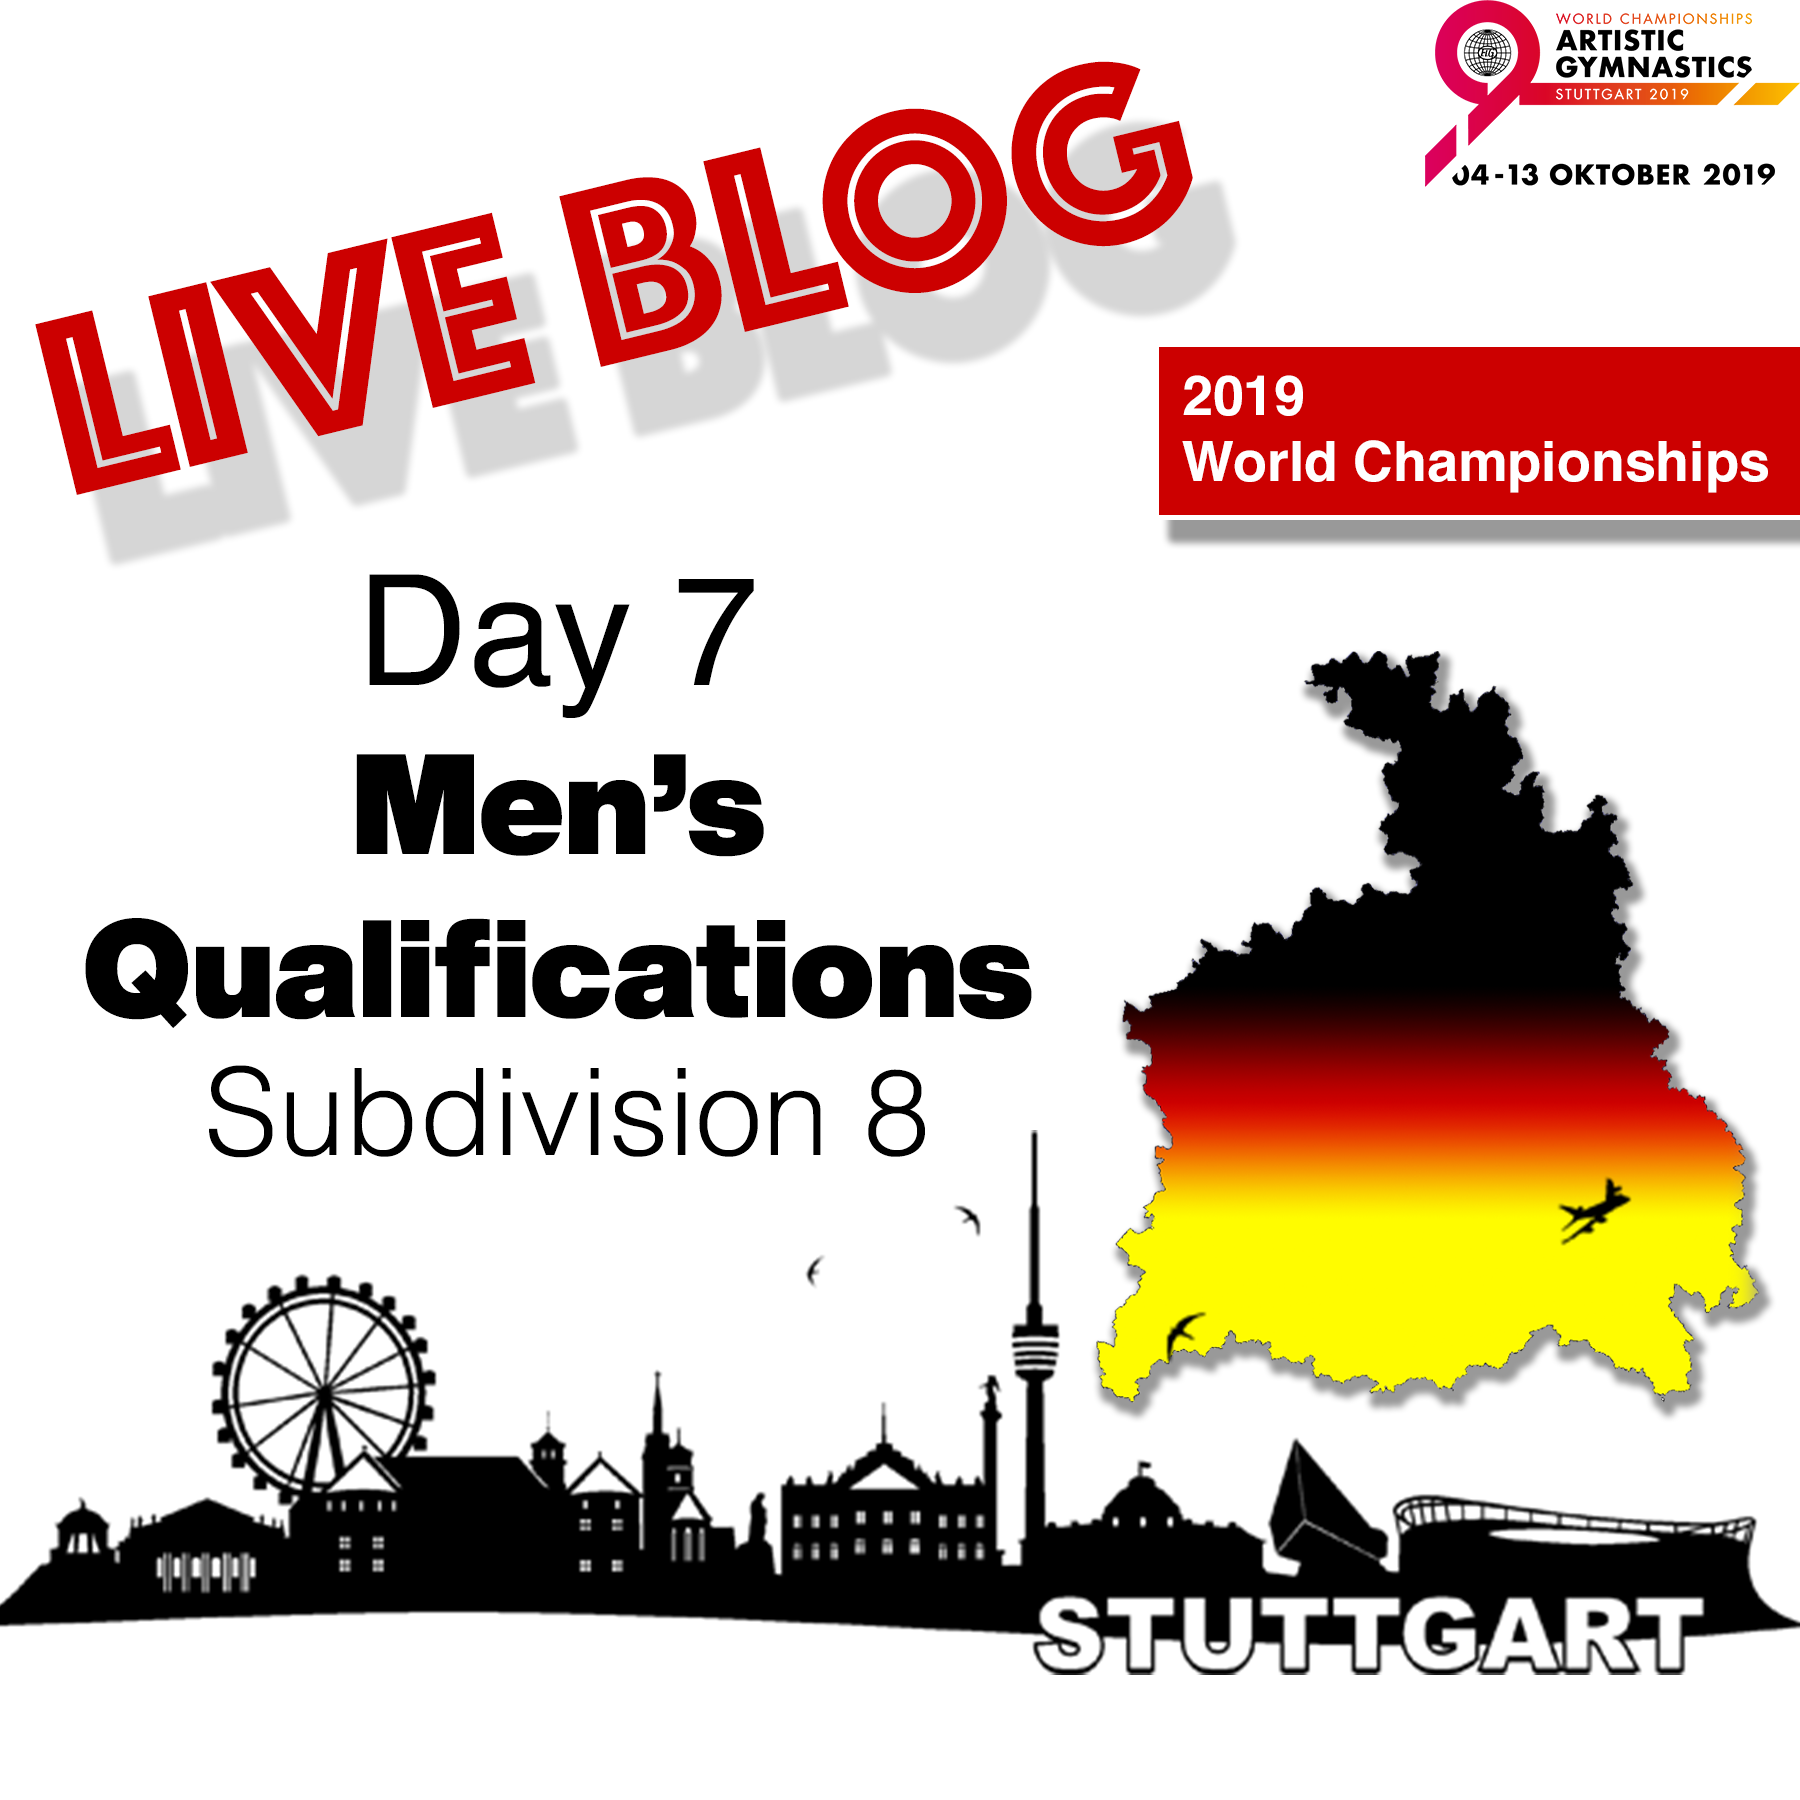 Live Blog: 2019 World Championships – MAG Qualifications – Sub Division 8, Oct. 7th